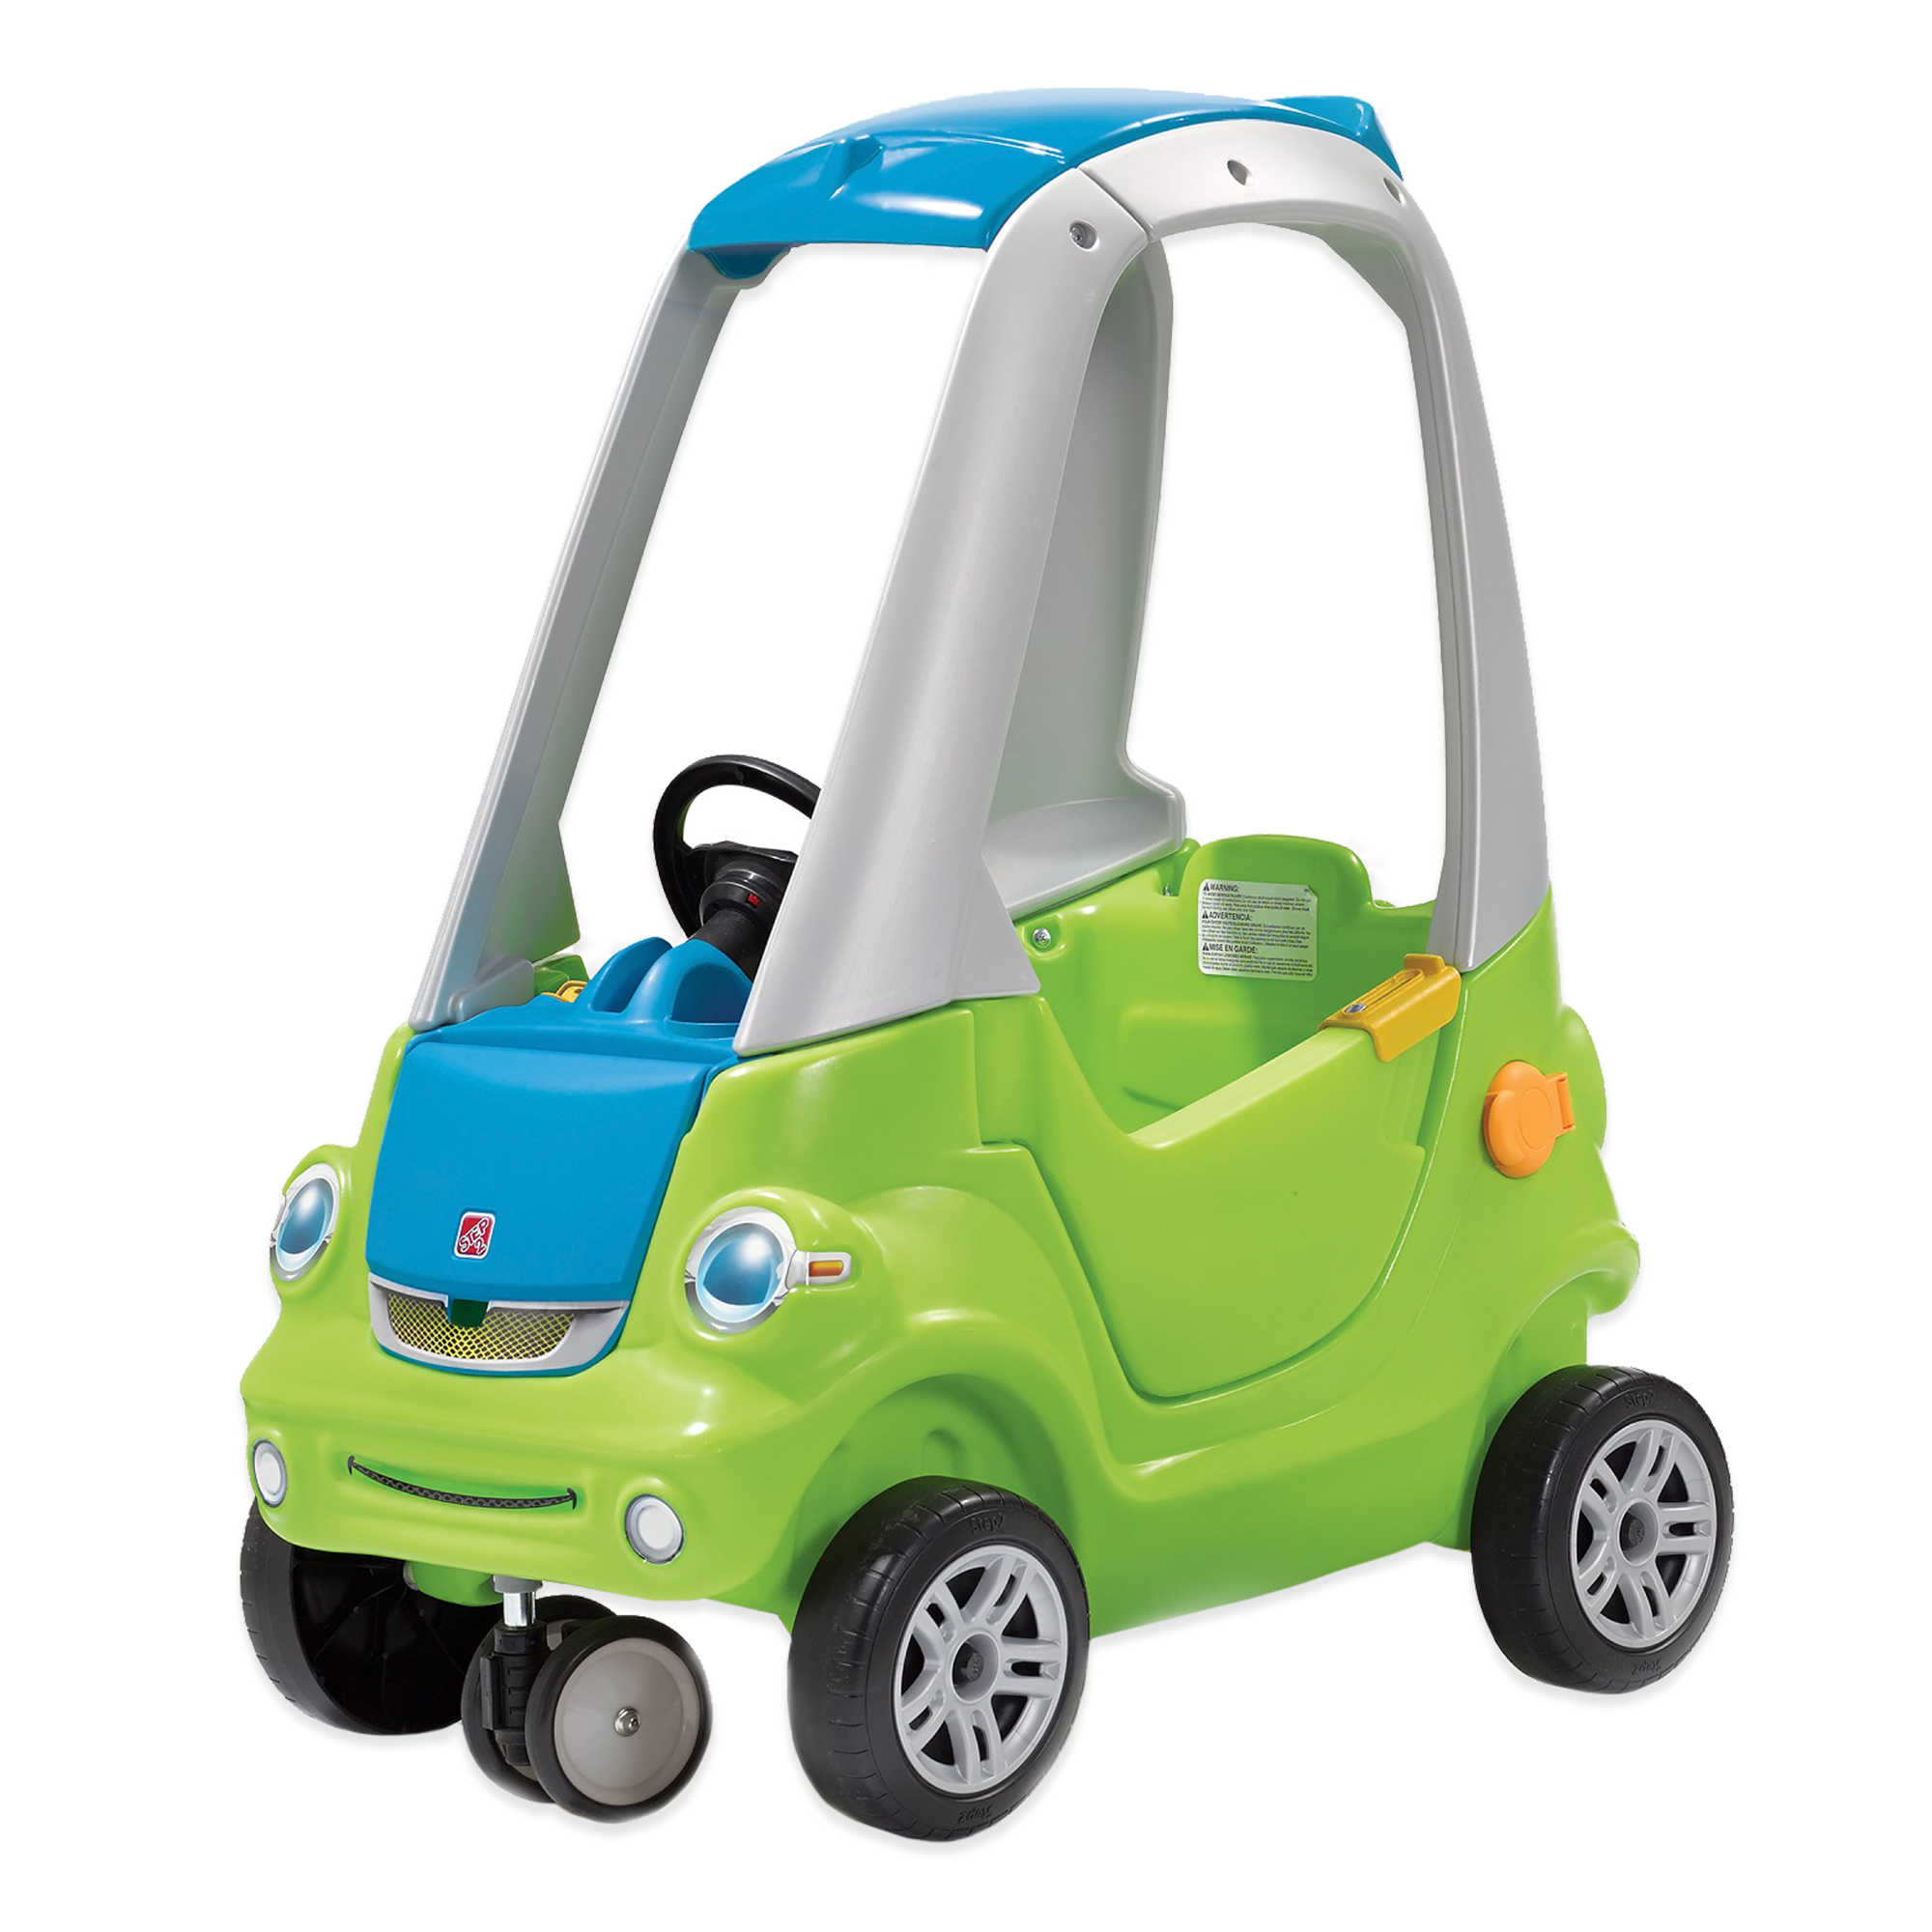 Step2 Toddler Outdoor Push Ride On Toy Car for Kids Easy Turn Coupe ...